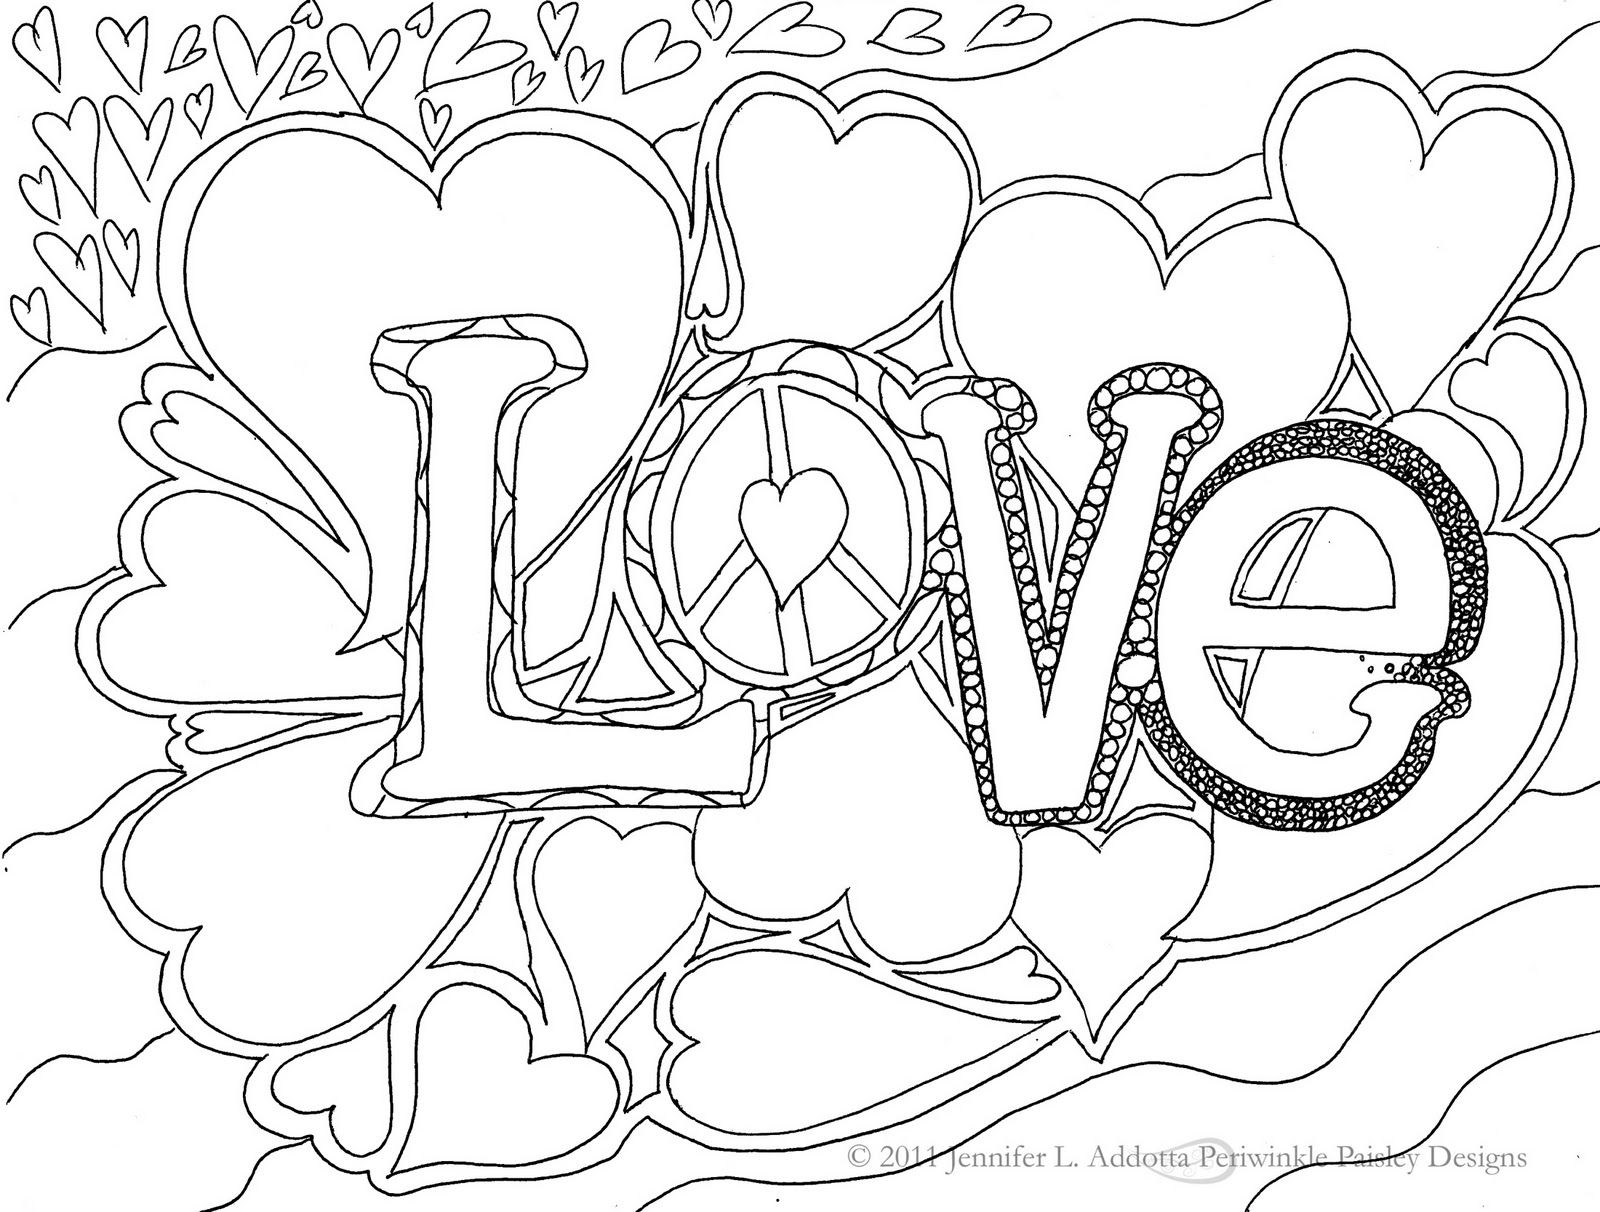 Free online coloring pages for adults - Free Printable Mosaic Coloring Pages Sketch Template Mosaic